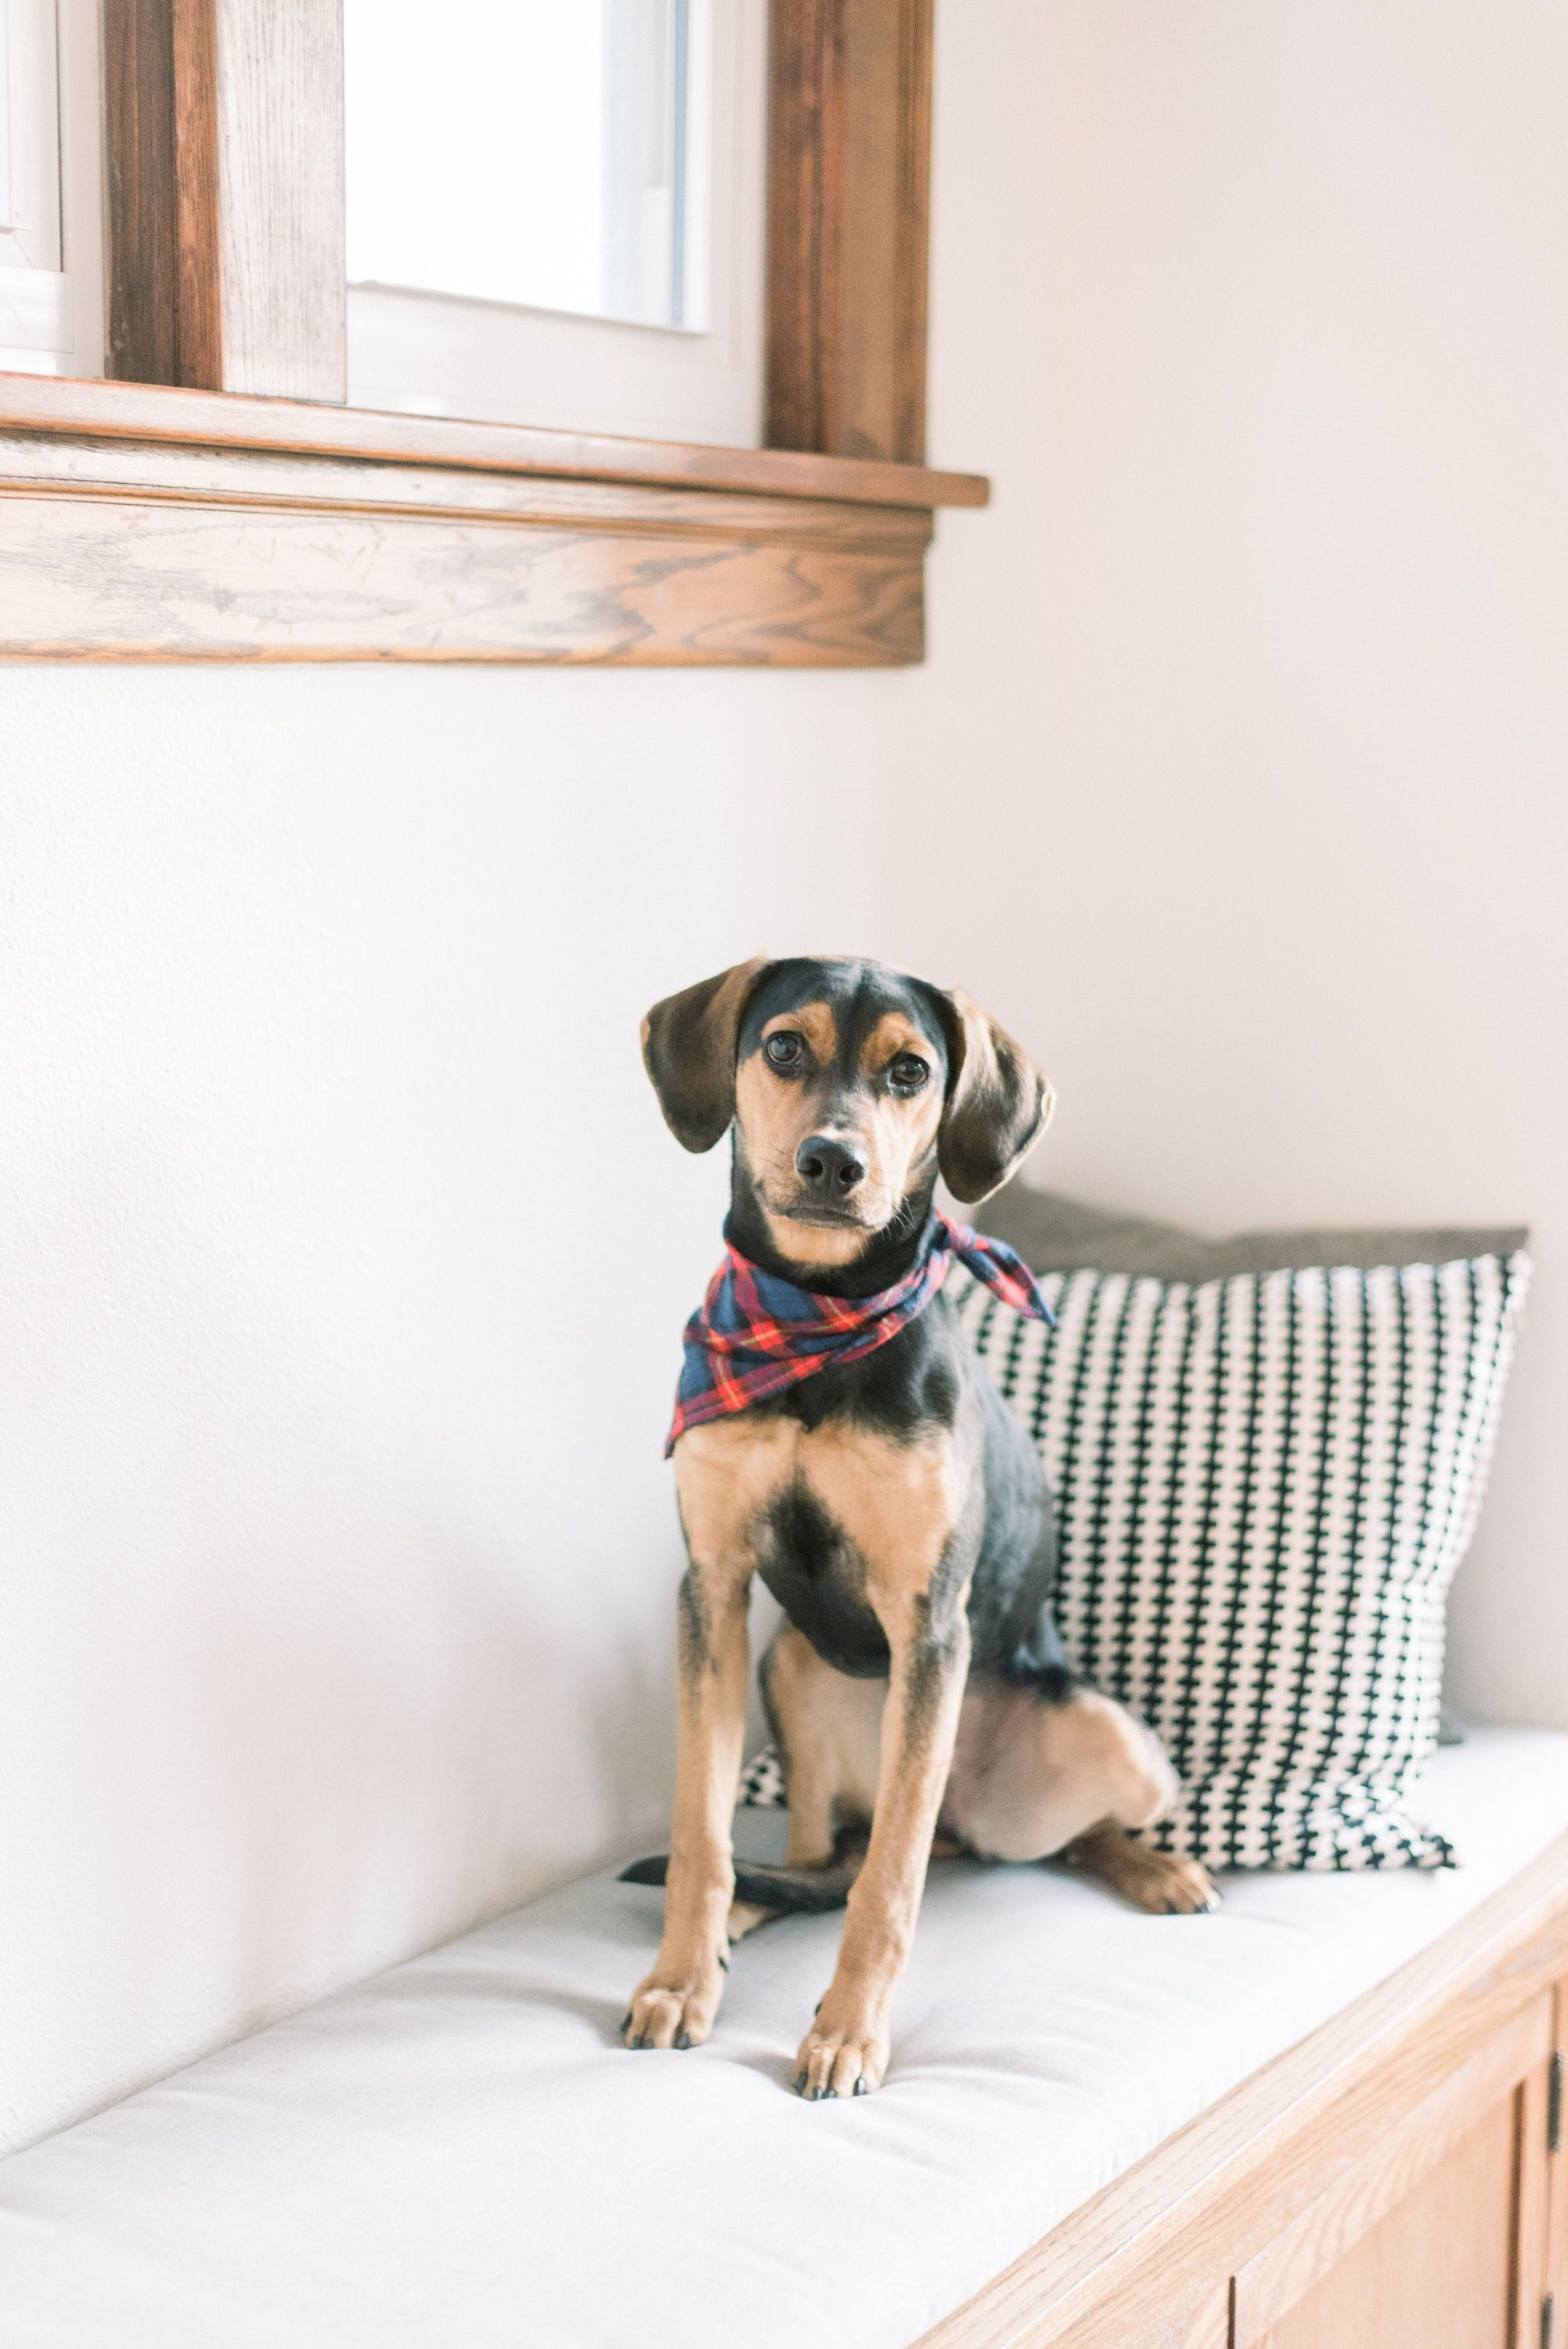 Coonhound Mix Coonhound Puppy Cute Dogs Pet Photography